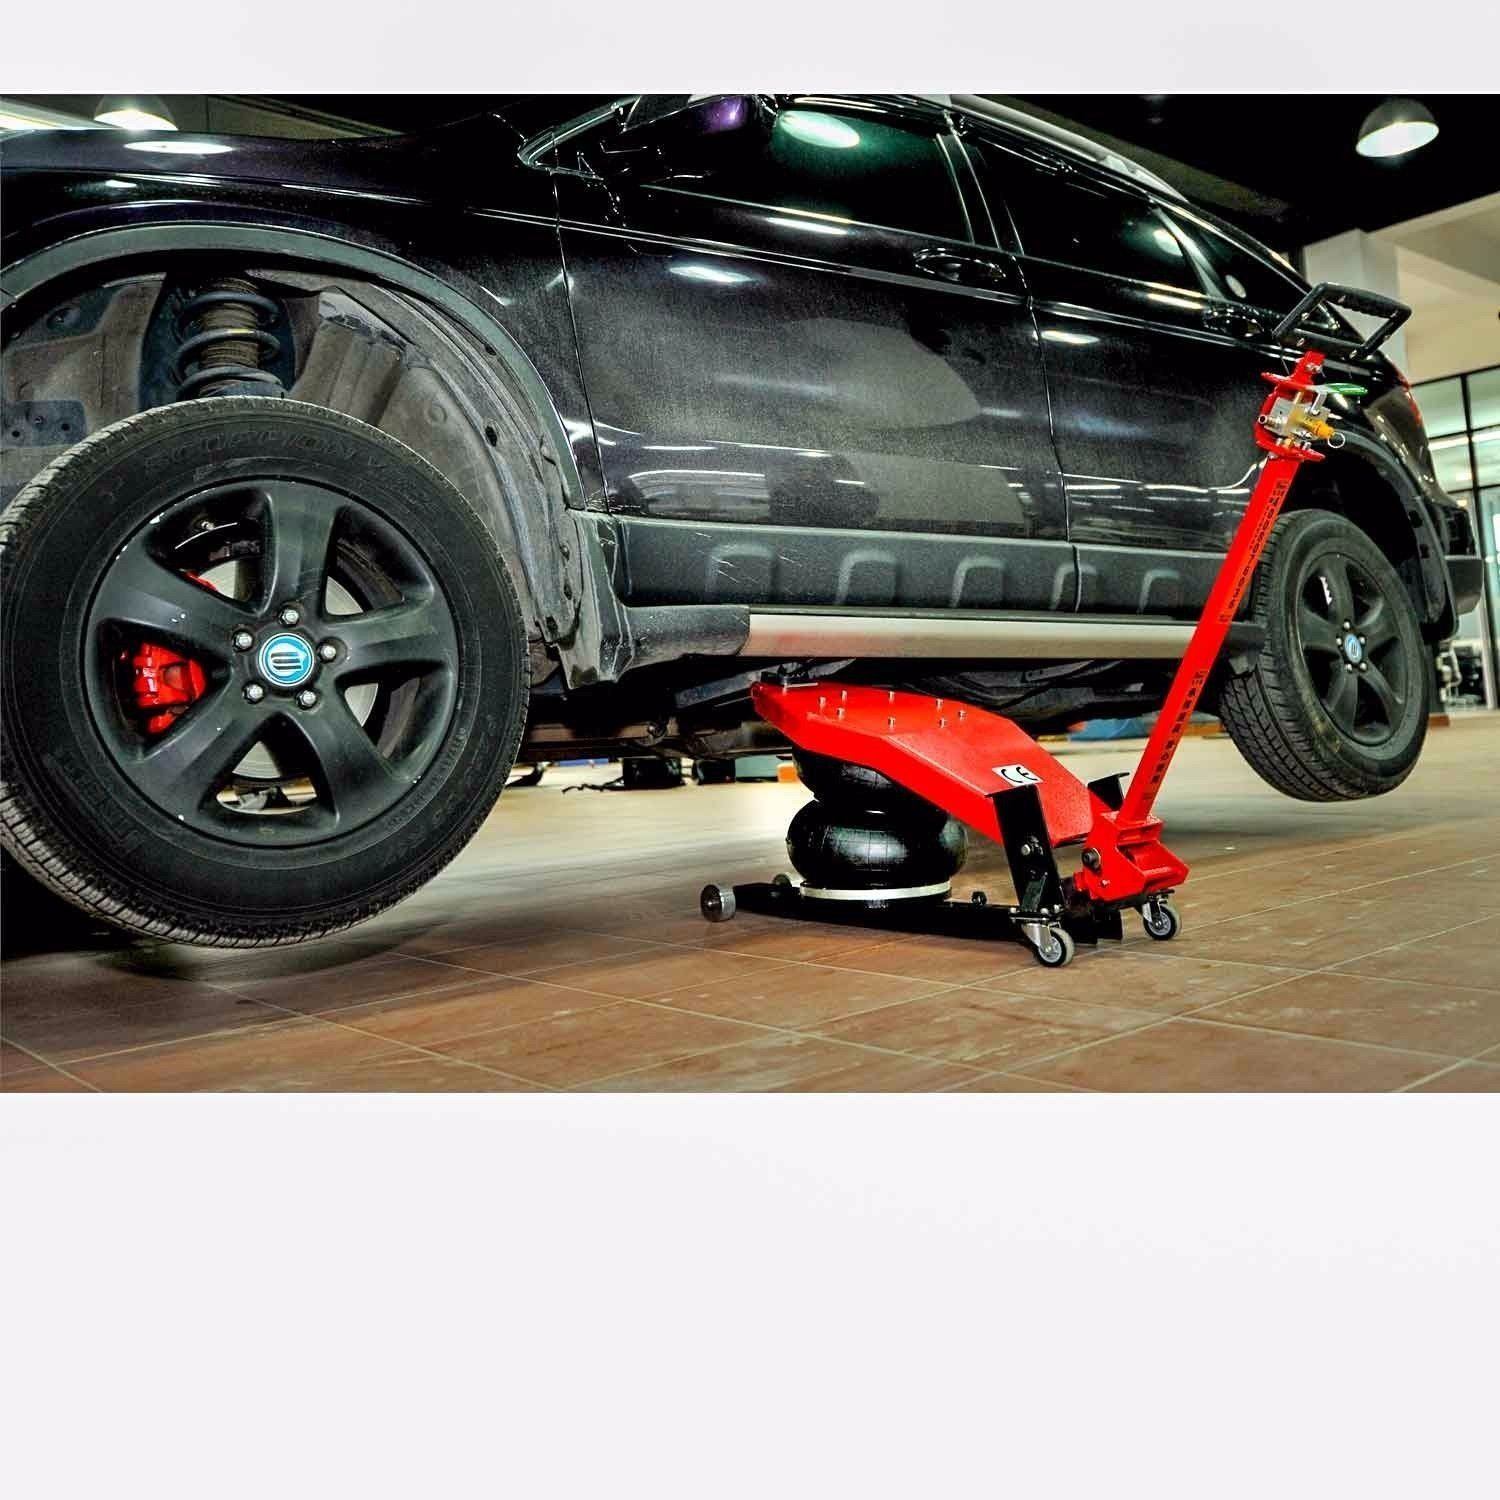 Floor Jack Lift Kits Air Double Bag Jacks Car